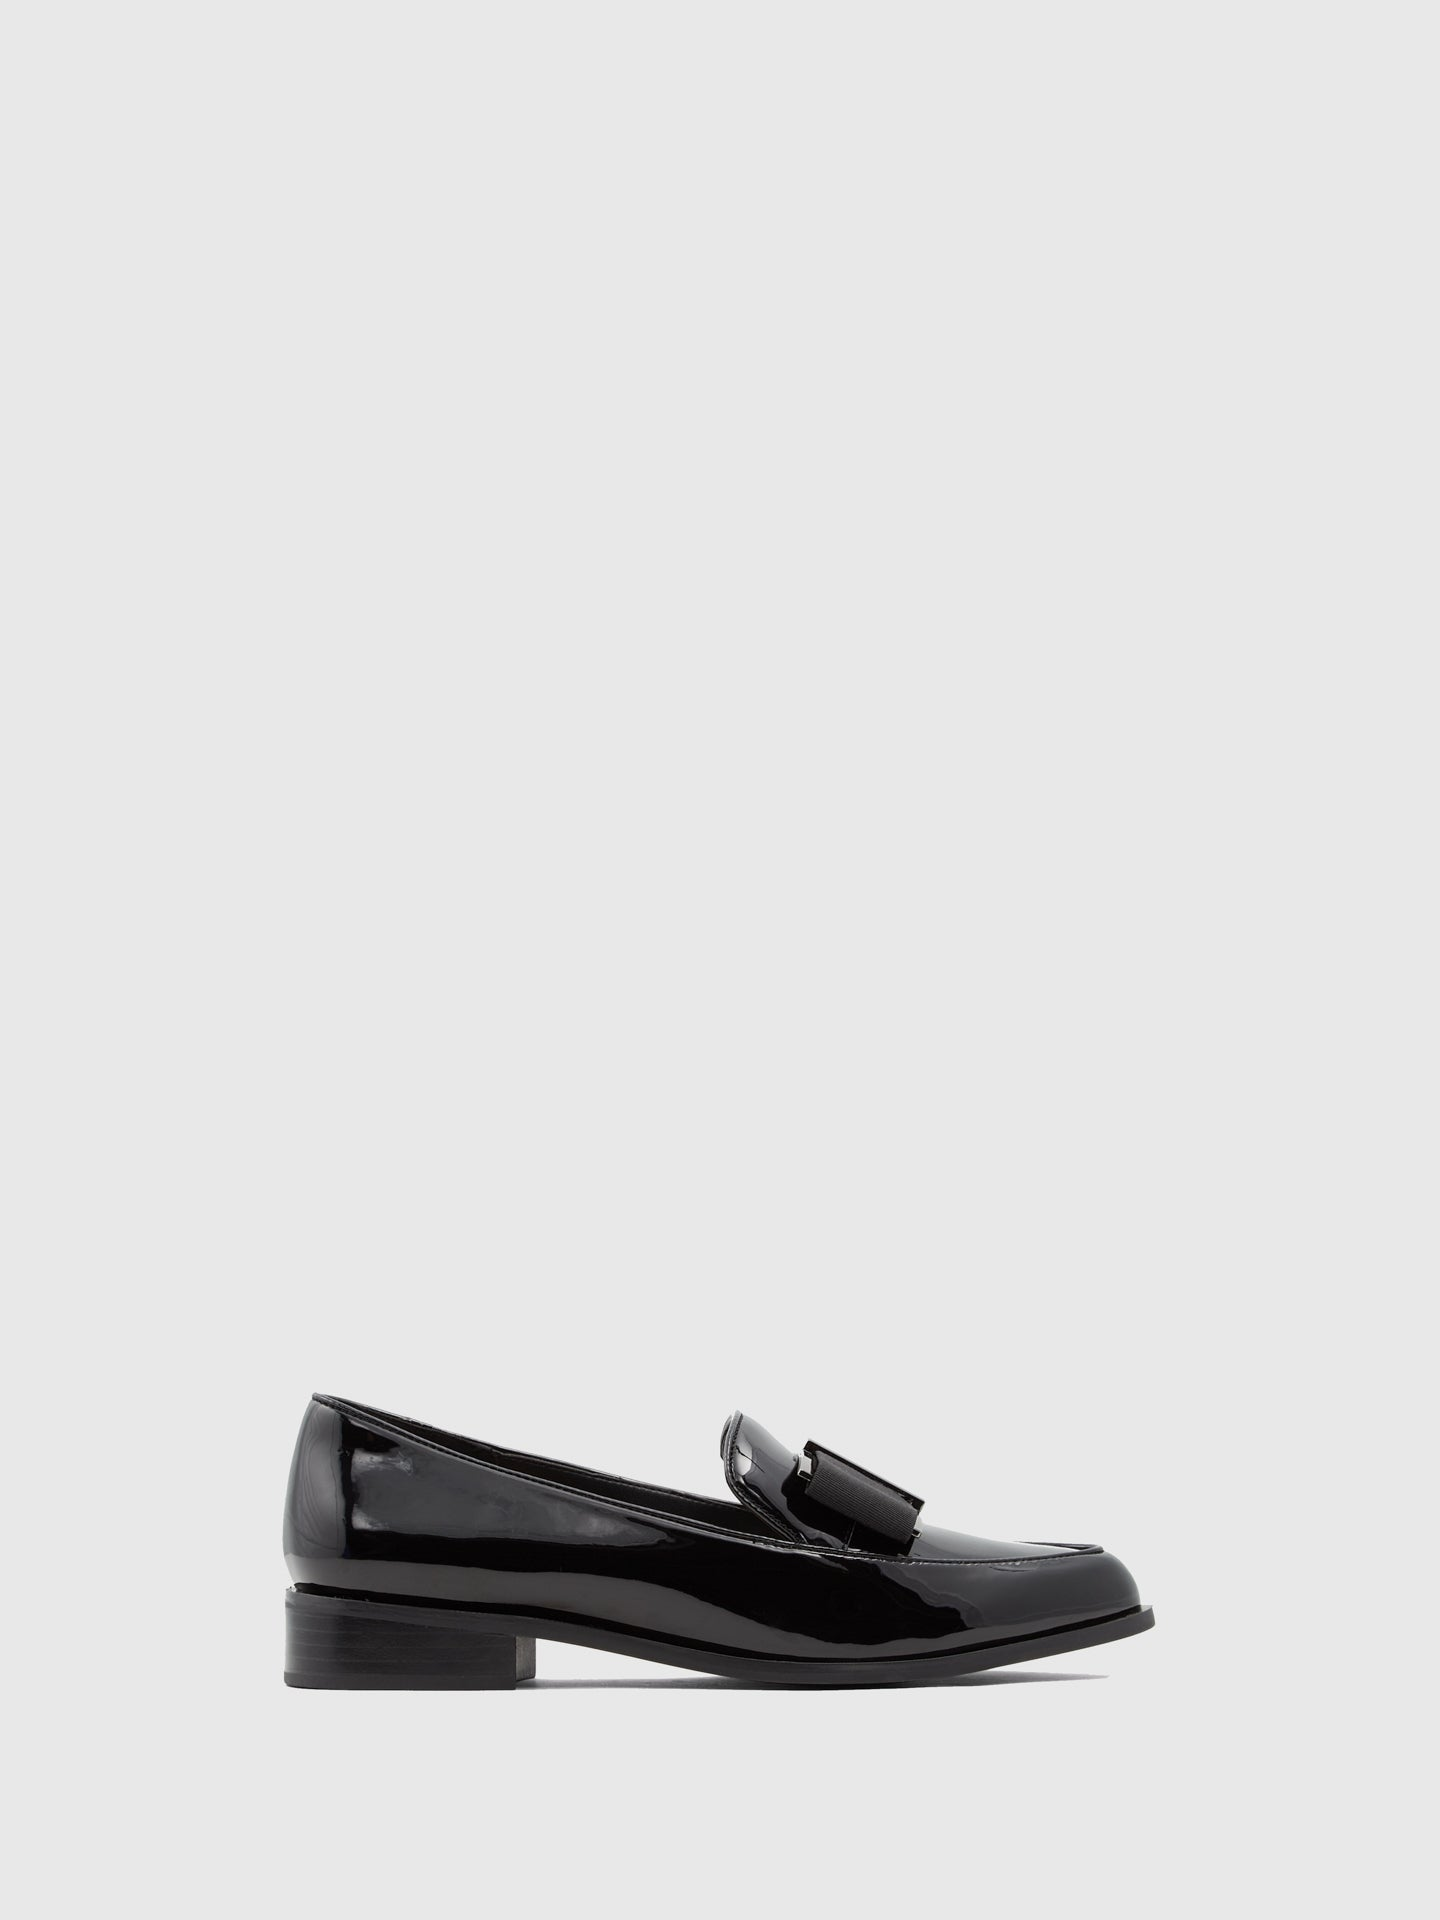 Aldo Black Round Toe Shoes